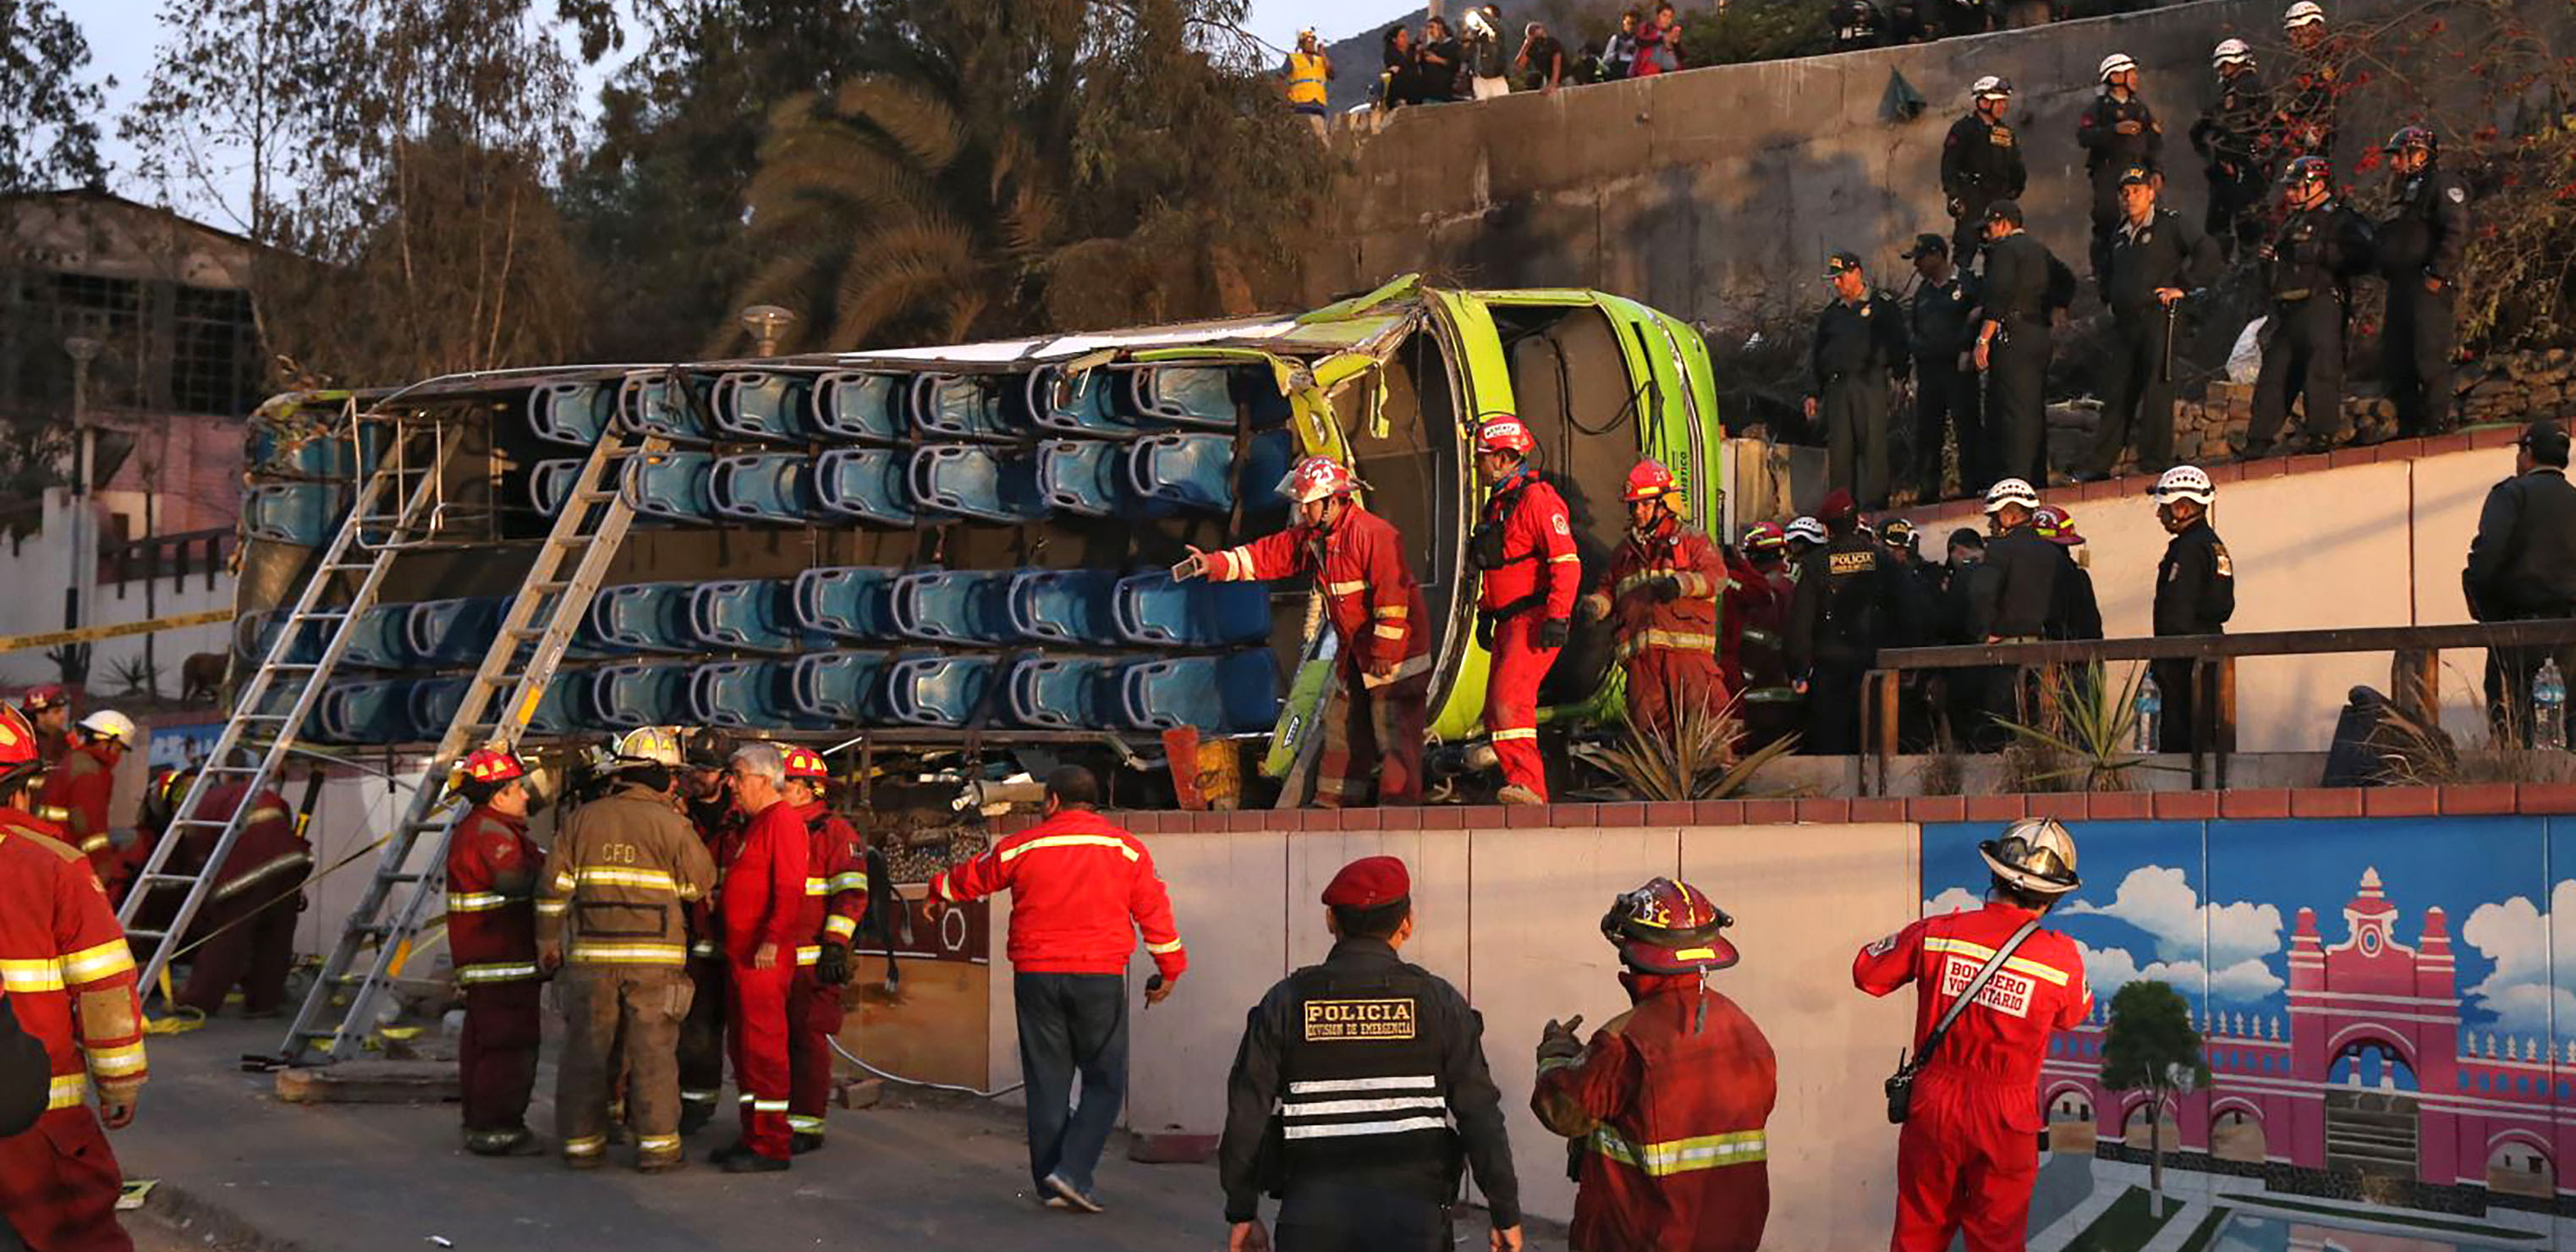 bus accidents in peru